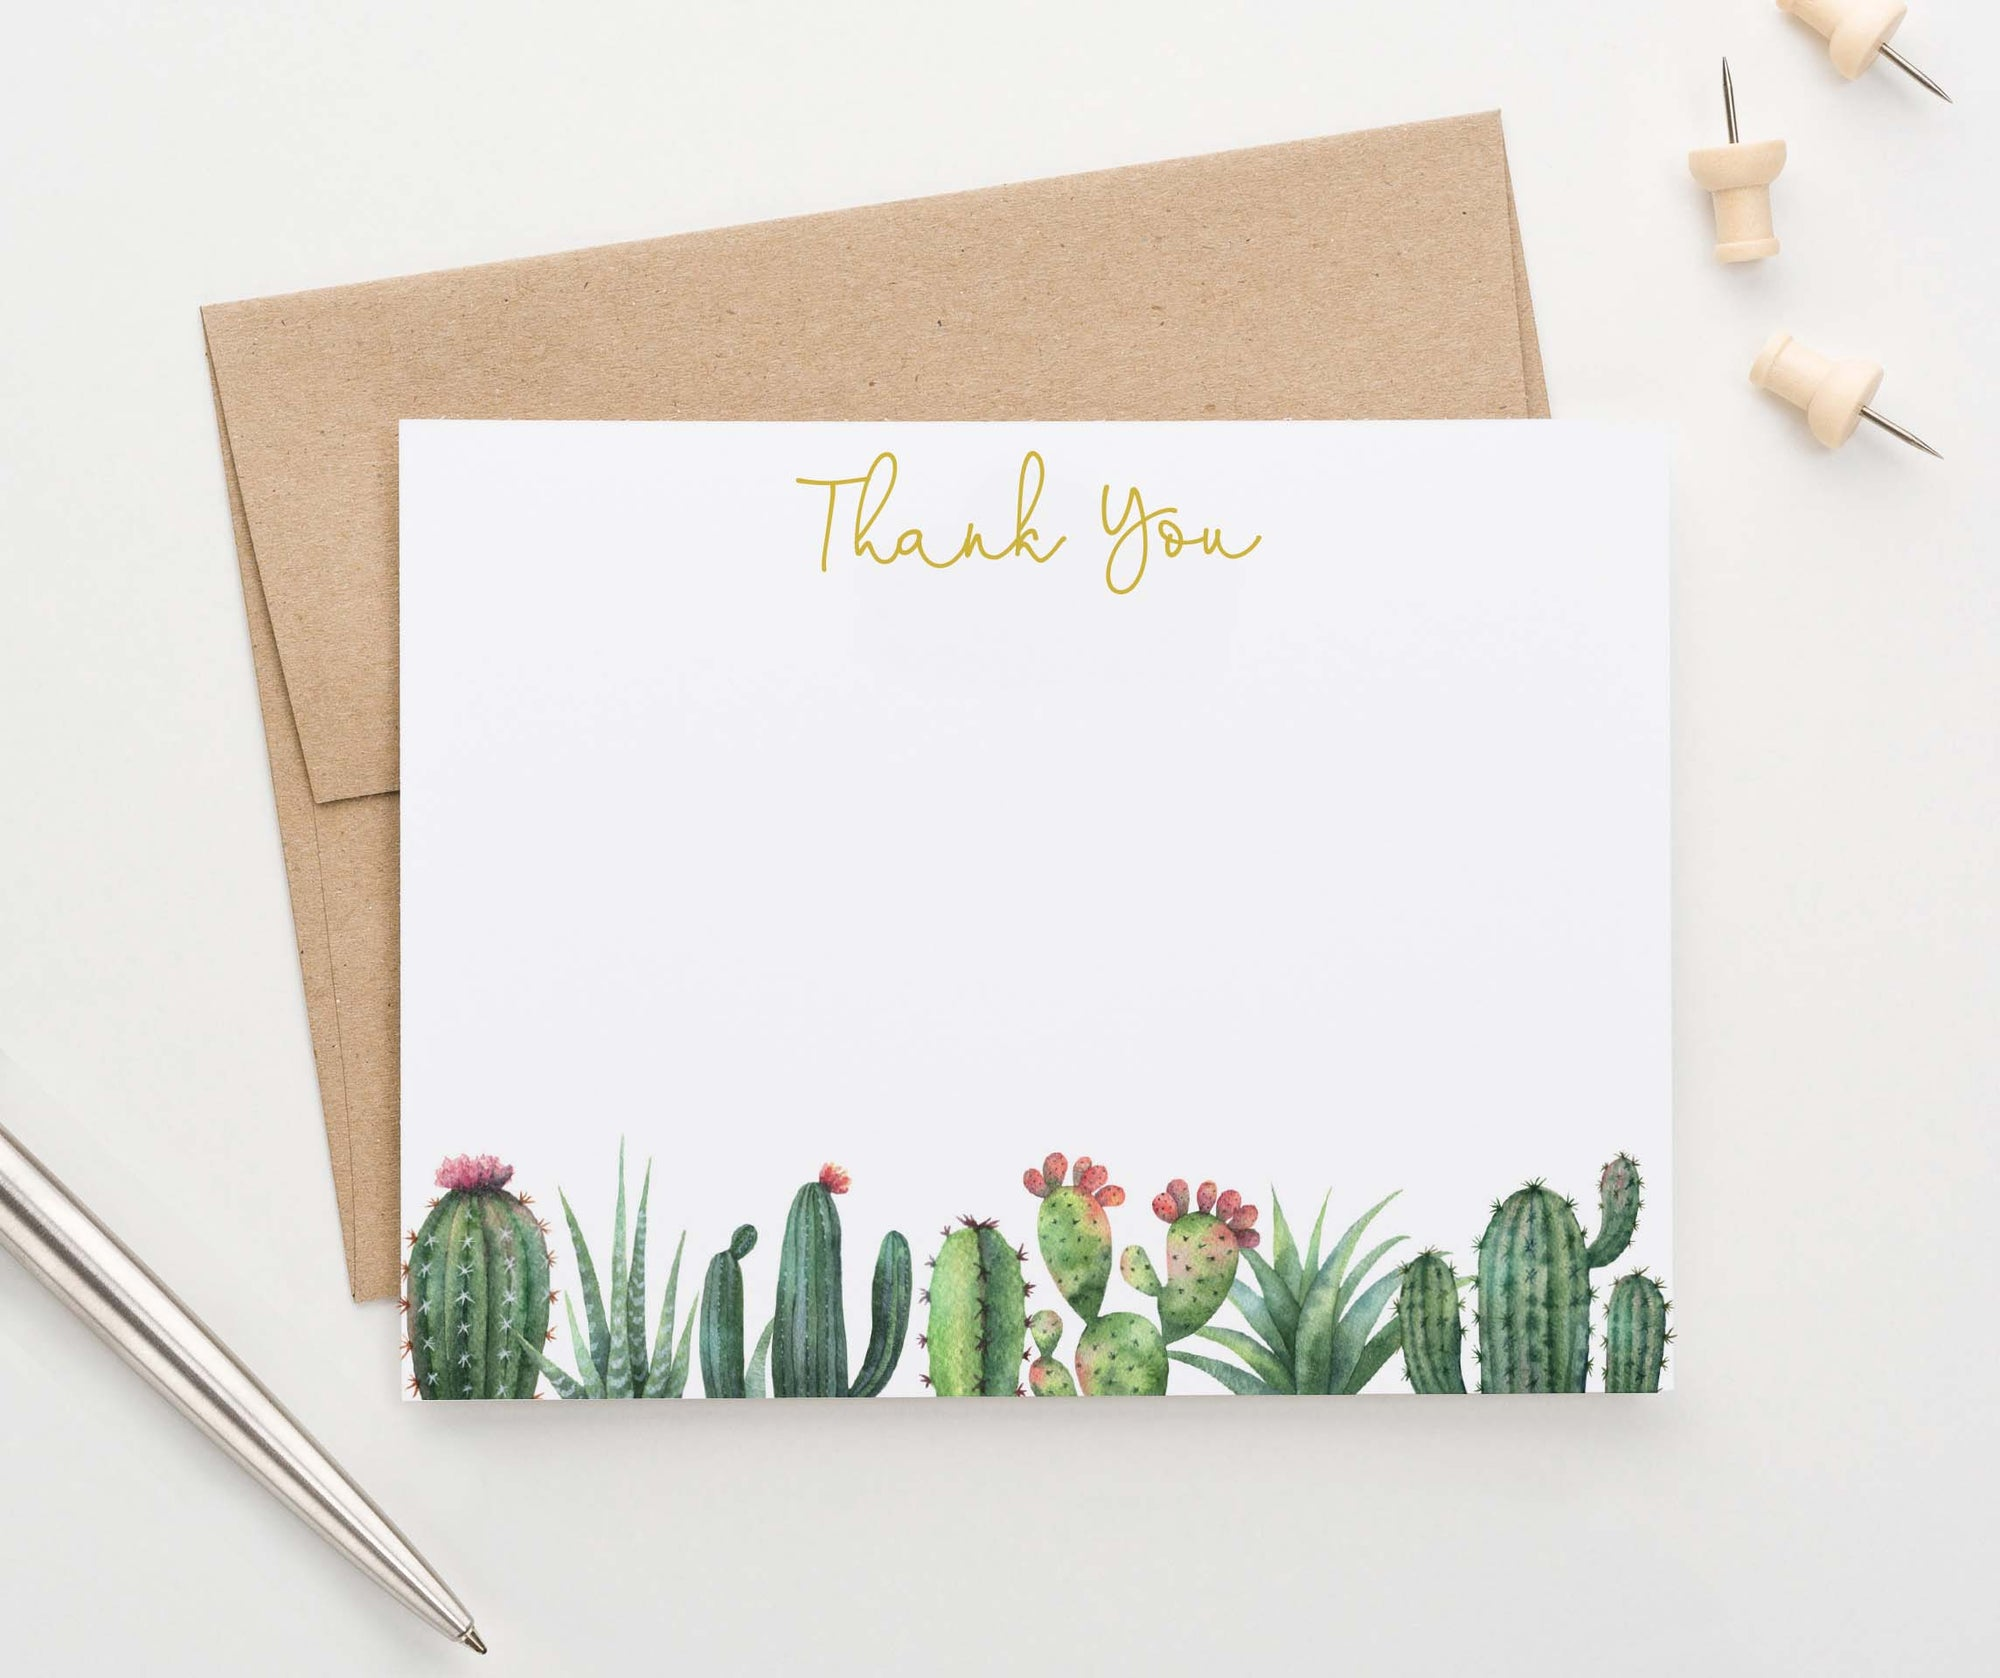 TY072 elegant flat thank you cards with cactus bottom border succulents adults